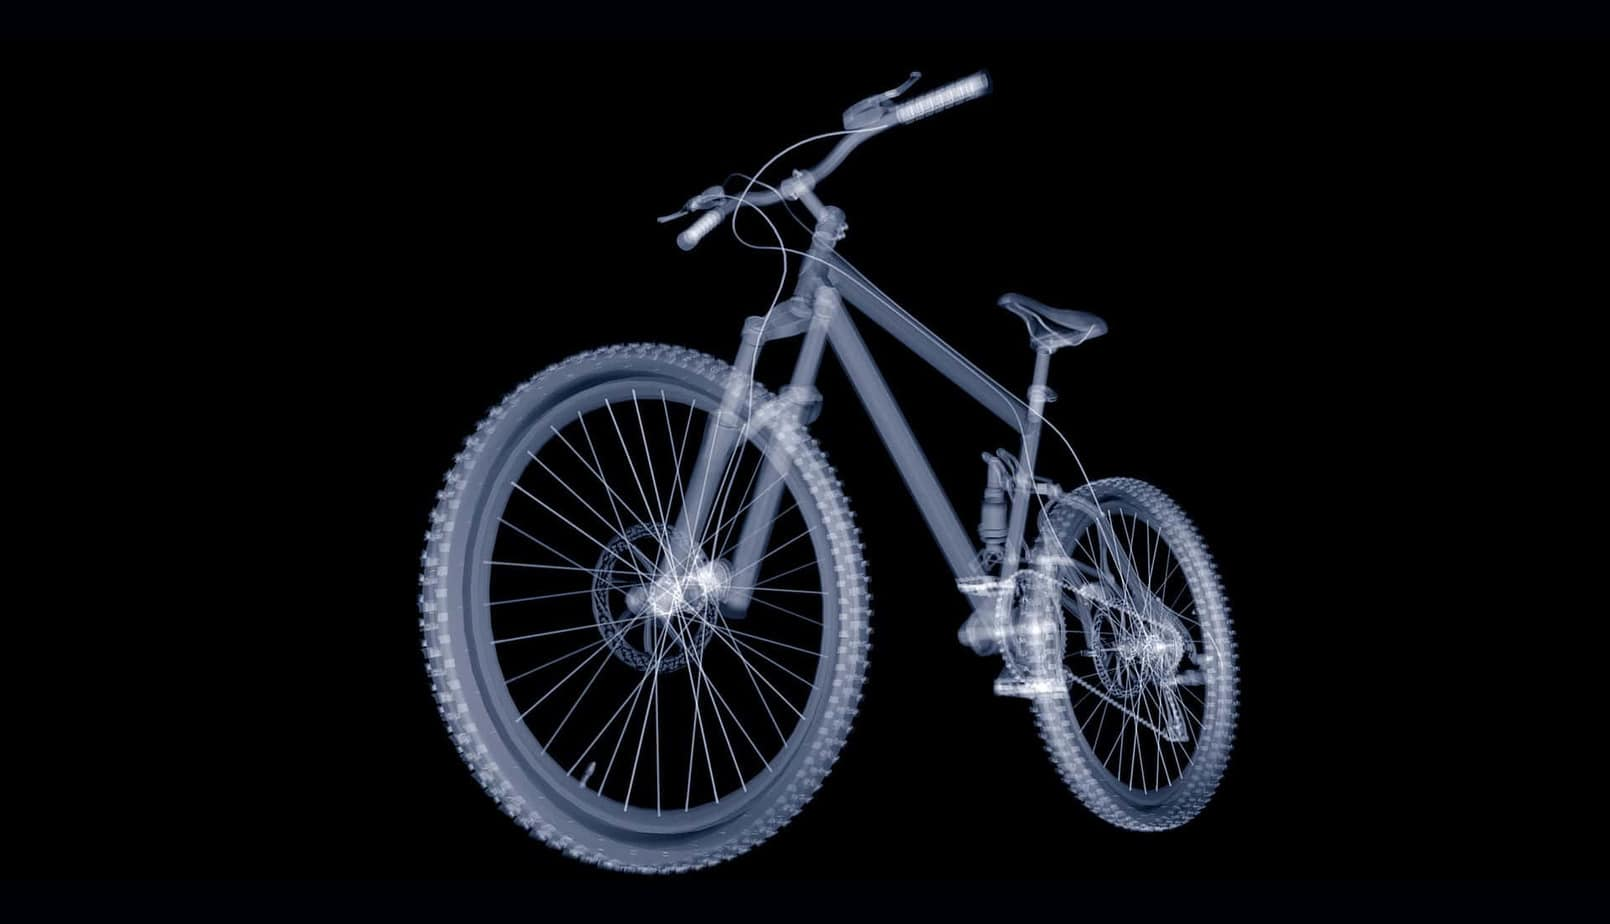 What Size Mountain Bike Do I Need? - 1 Easy Guide 1